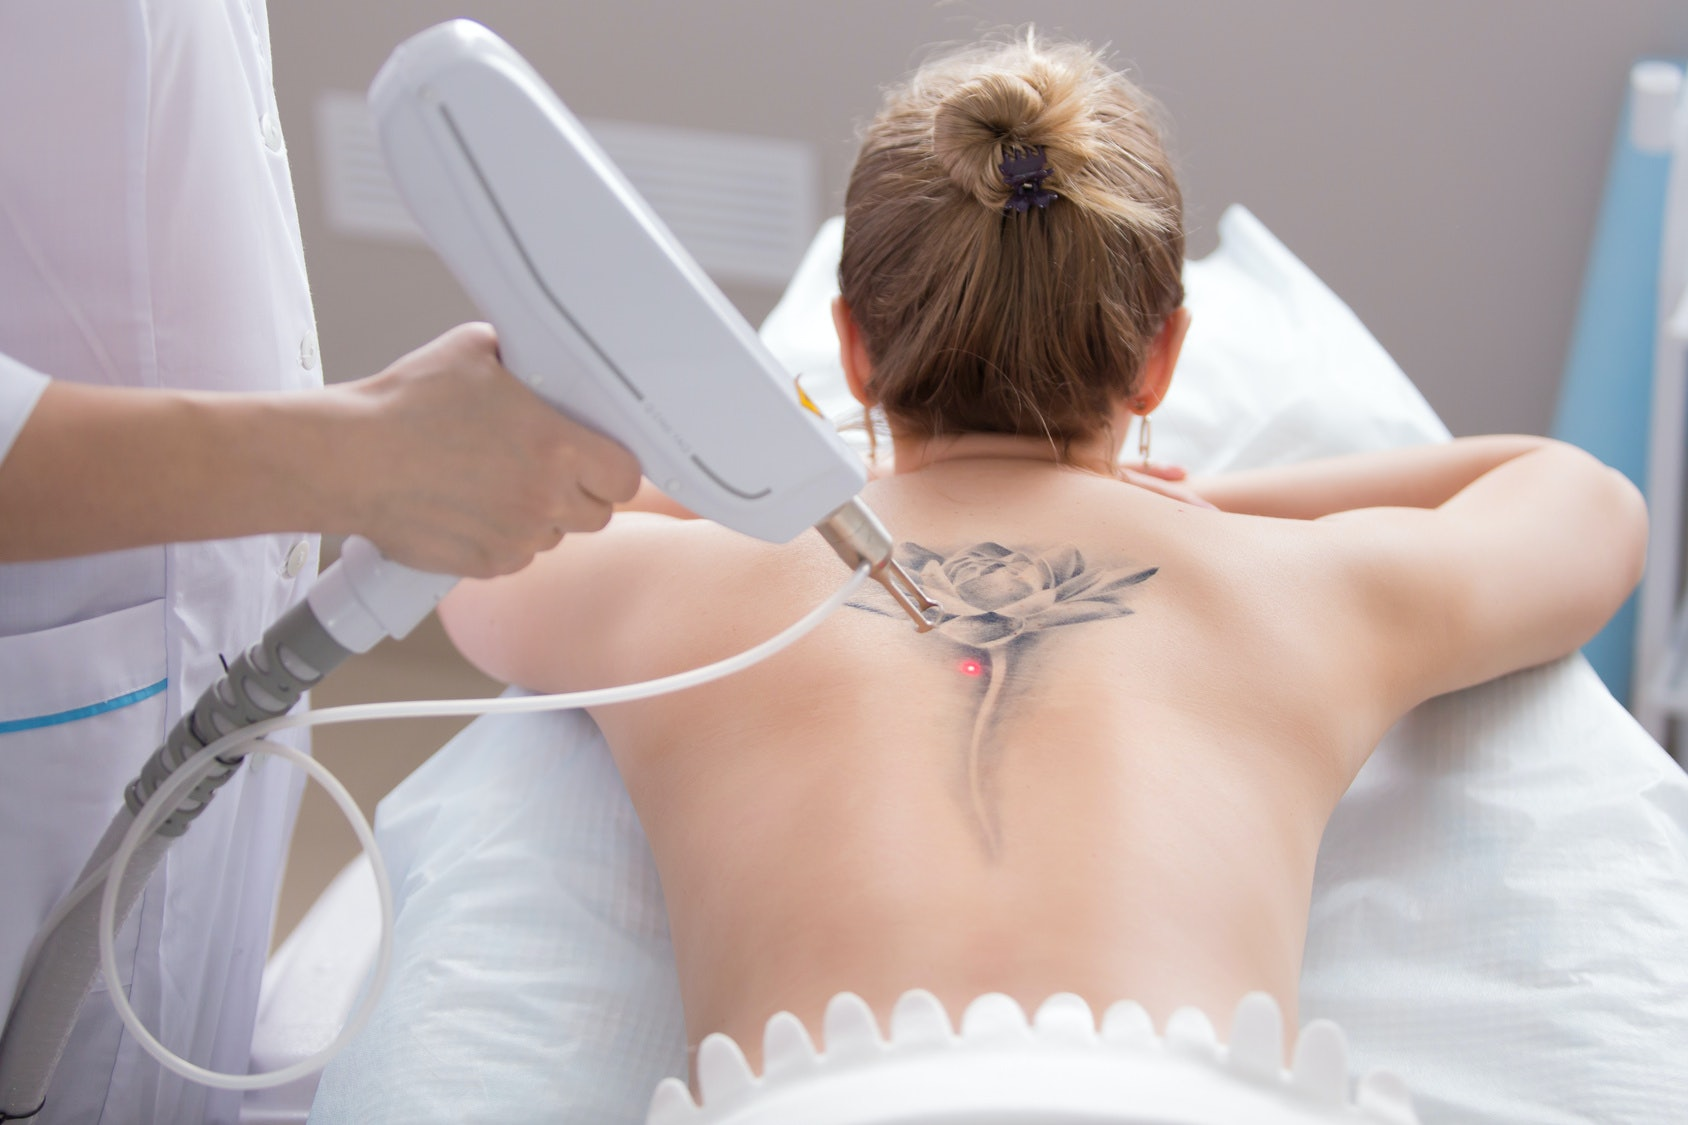 18d21bf48 The 7 Most Common Tattoos Women Get Removed, According To Laser Surgeons